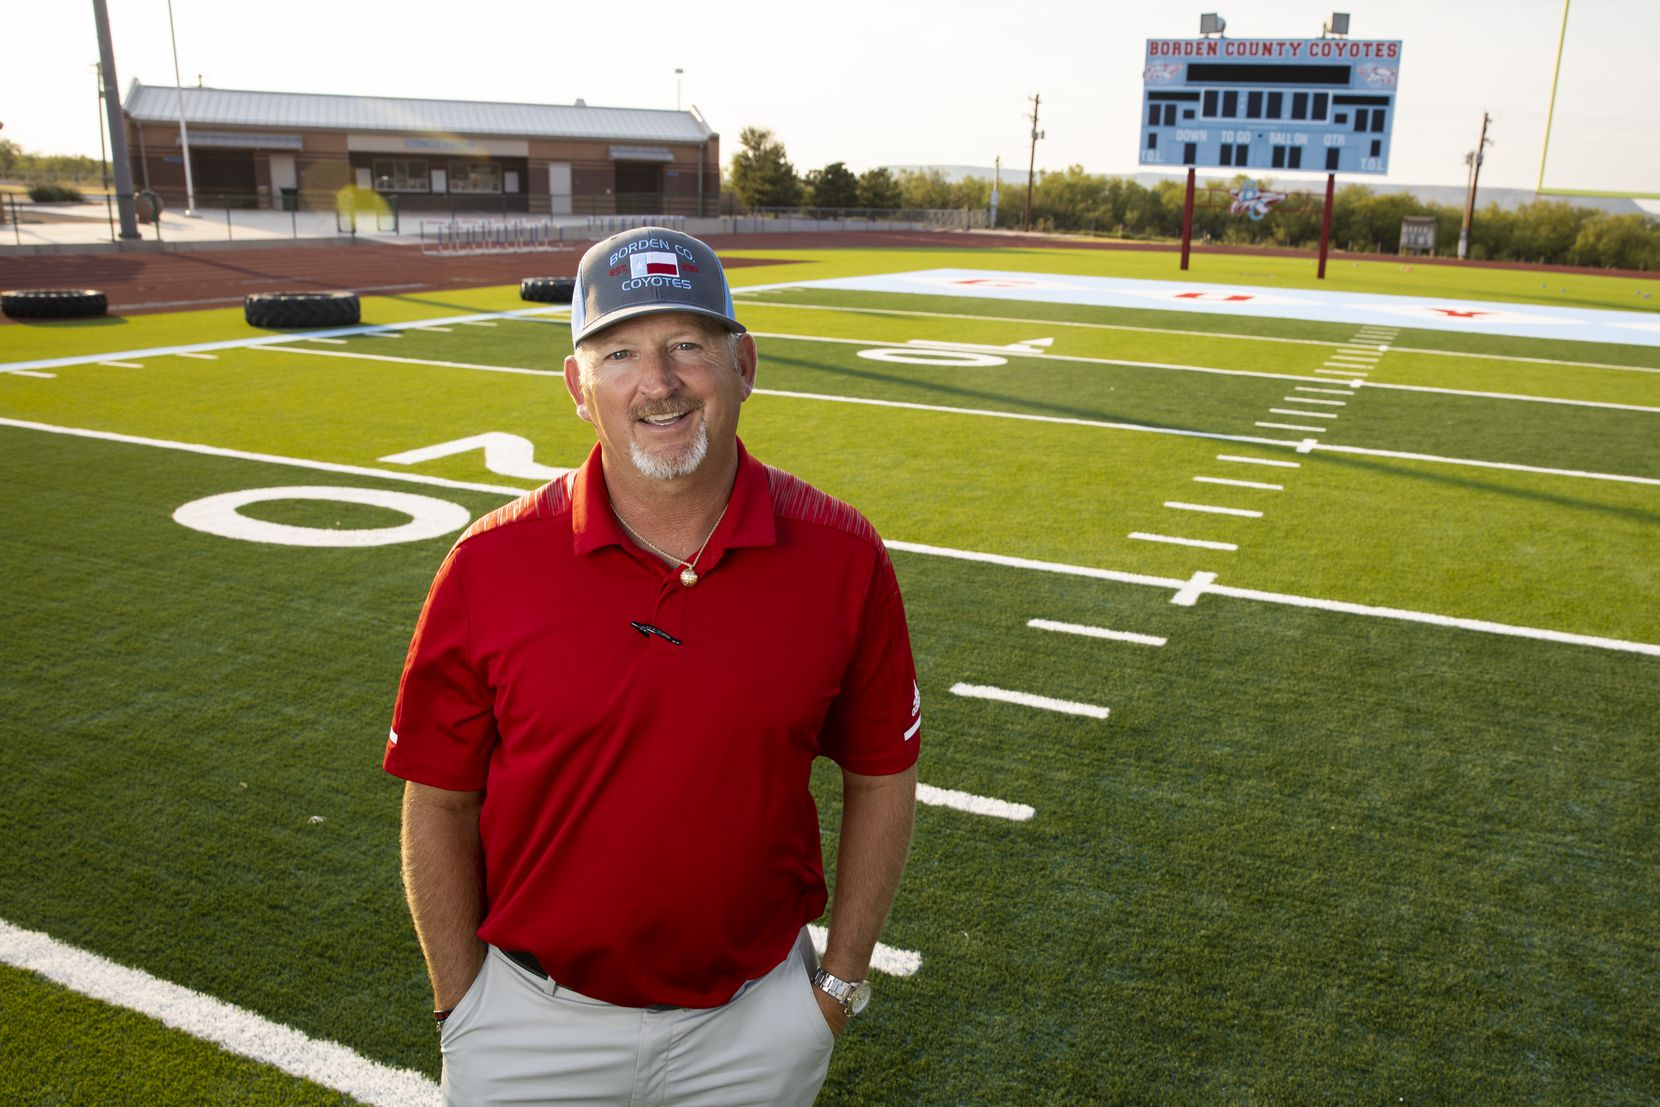 Borden County High School football coach Trey Richey poses for a photo on his field on Aug. 17, 2020 in Gail.